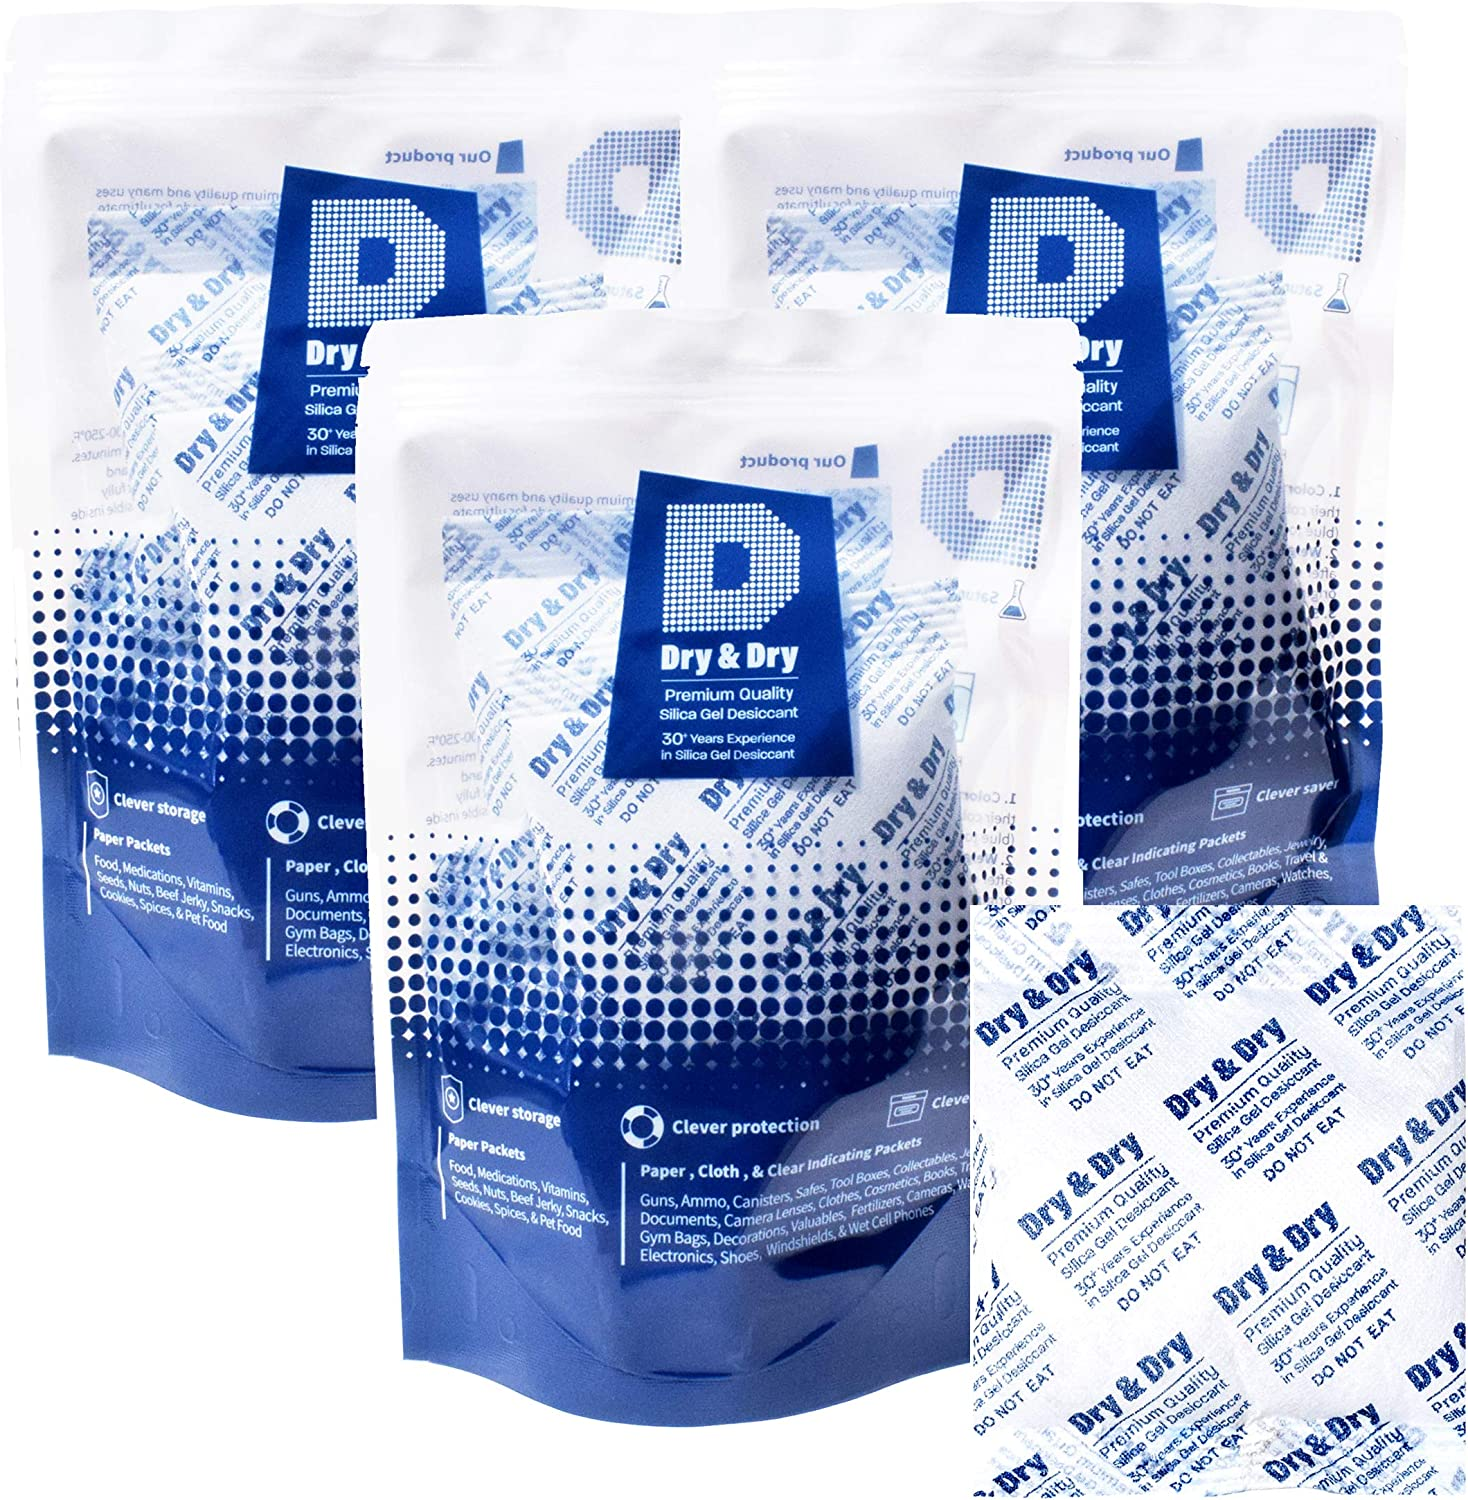 Free Shipping! 100-Pack Wisepac Desiccant 8g Bags